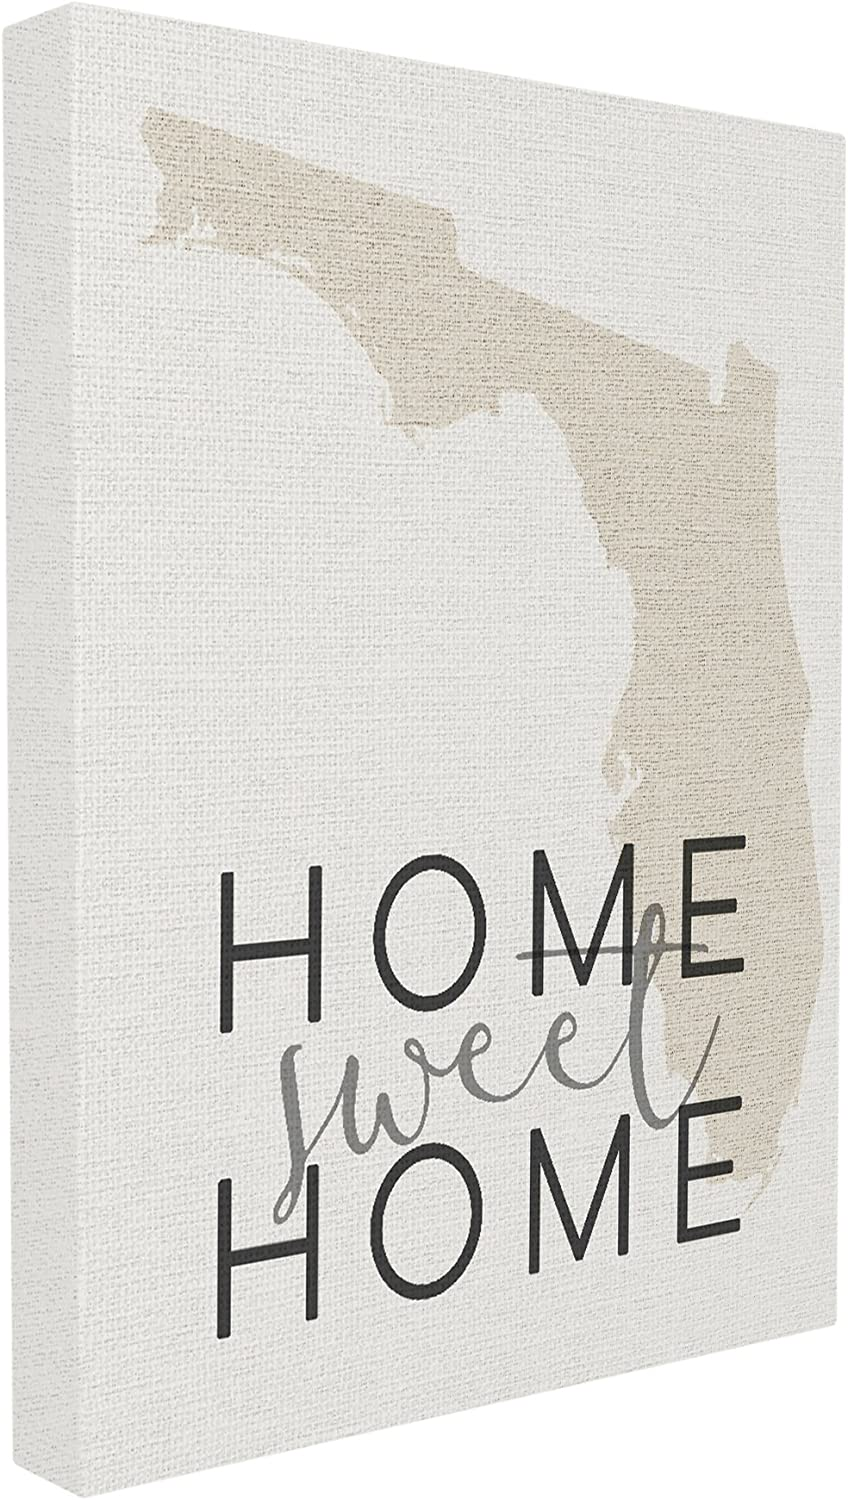 The Stupell Home Décor Collection Sweet Home Florida Typography Stretched Canvas Wall Art, 16 x 20